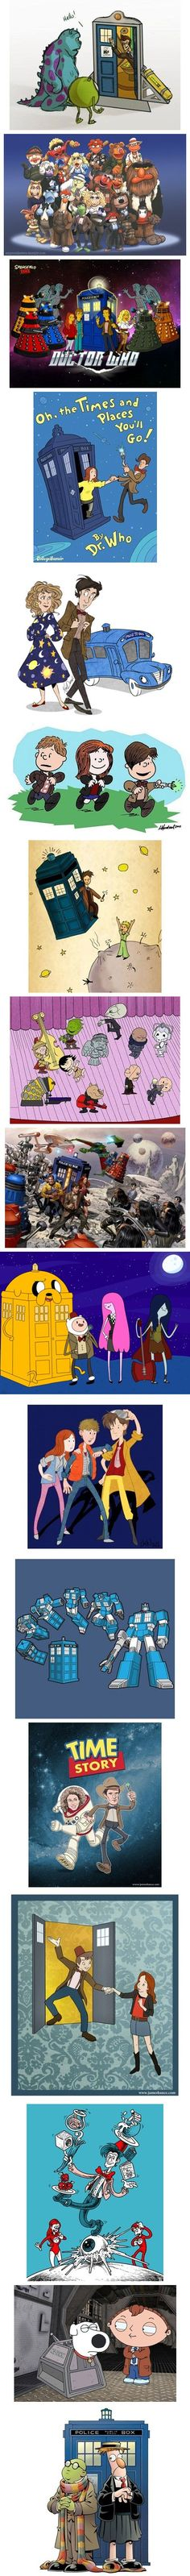 Doctor Who mash ups | Things for Geeks ---	peter pan mash up is the cutest ever!!!